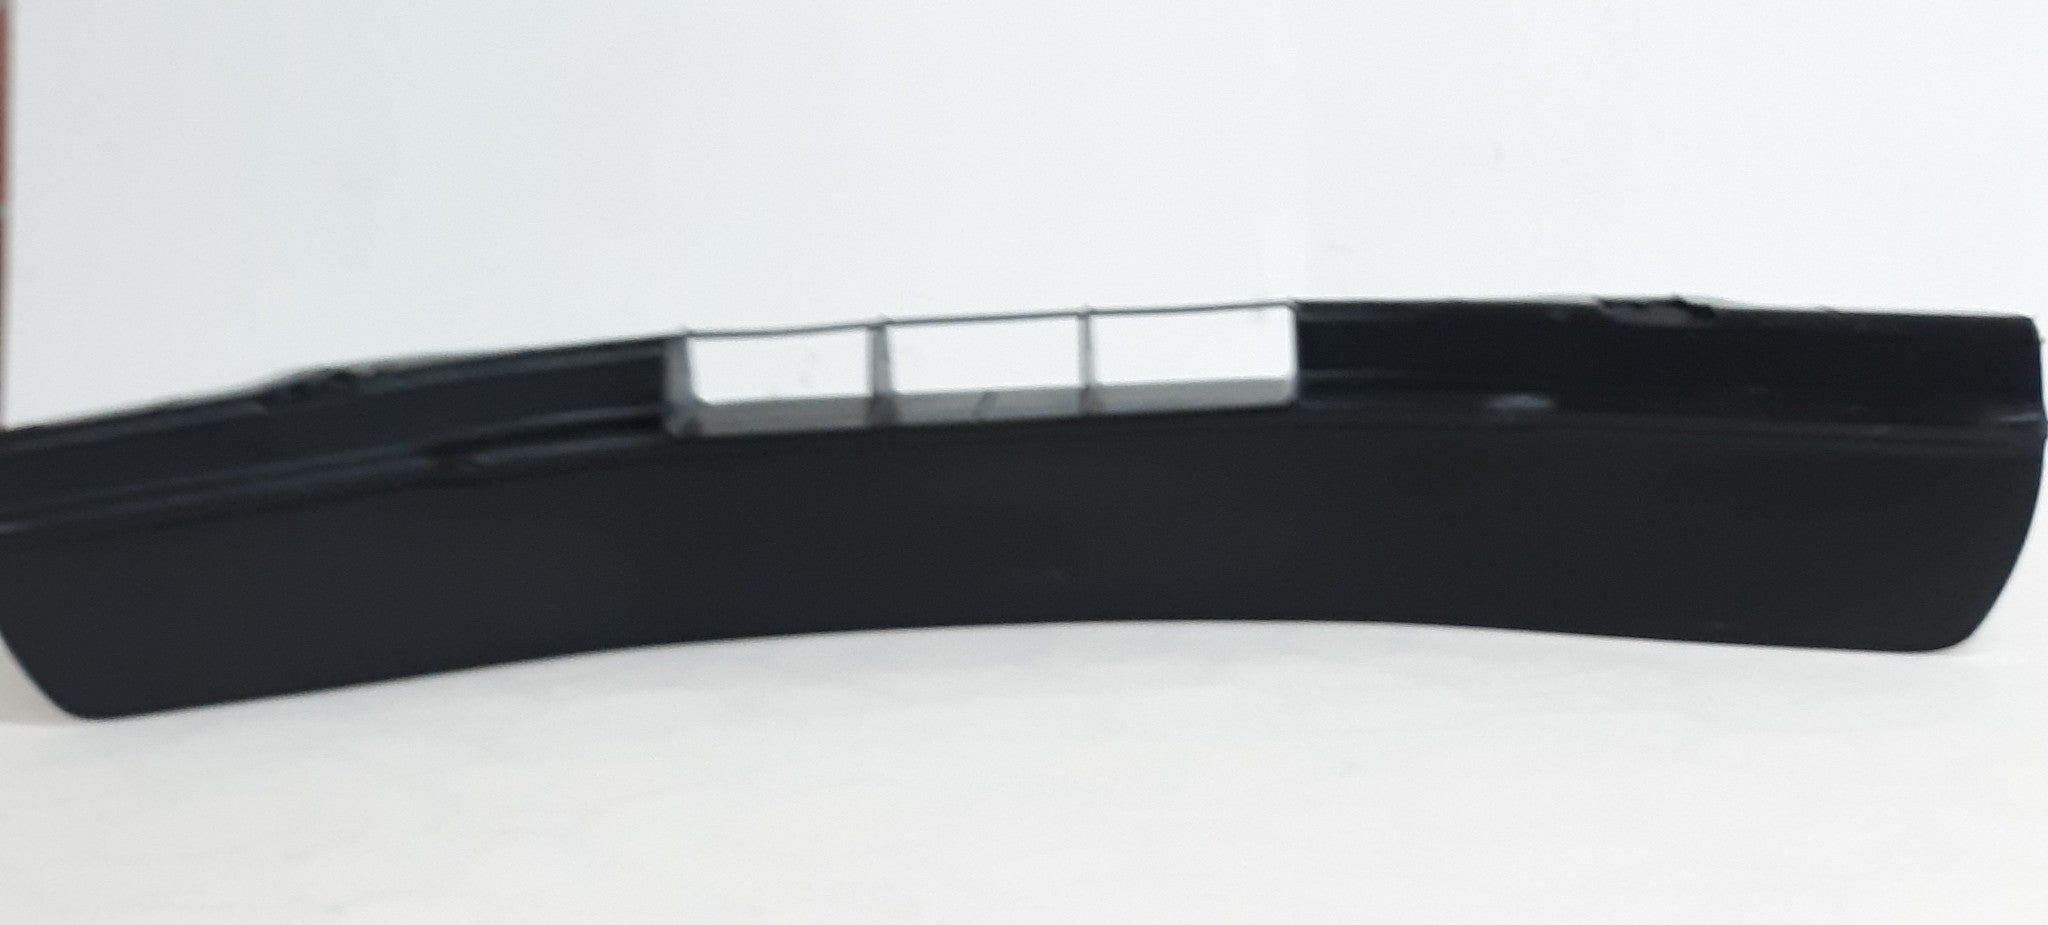 2012 Ford F150 Engine Air Deflector Shield Bl34-6b629-aa OEM